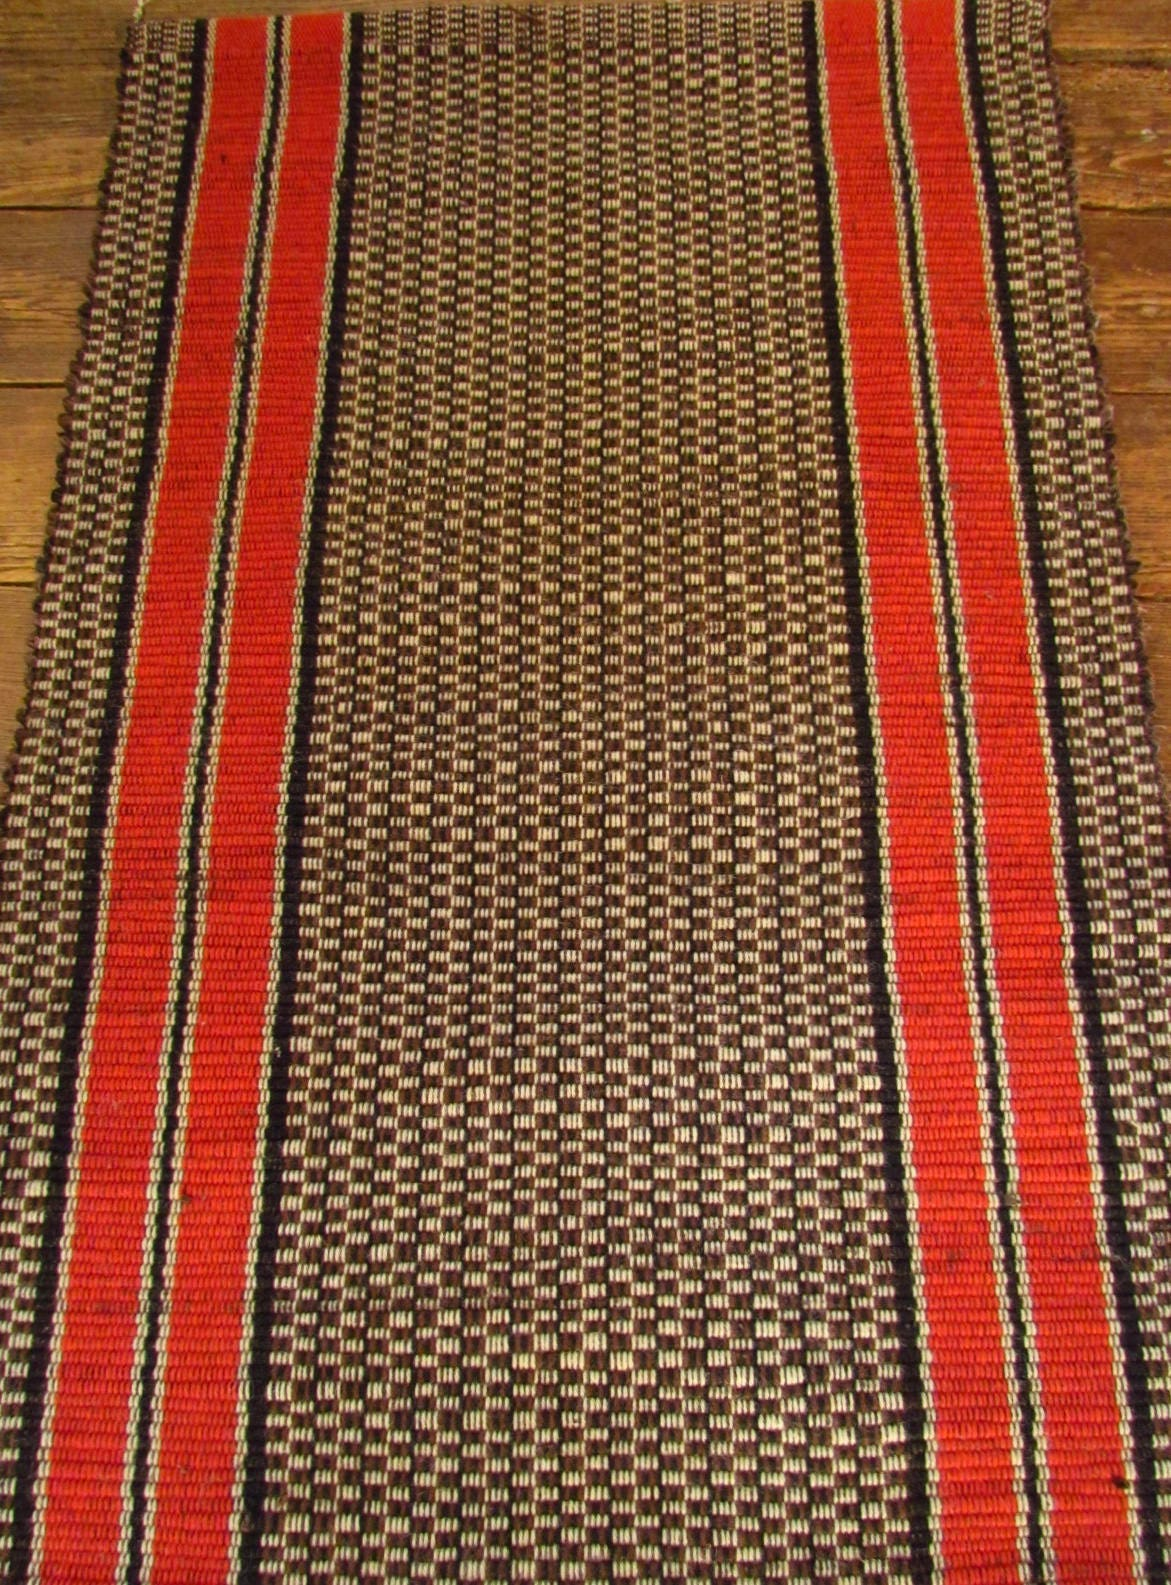 Handwoven Rag Rug Natural Fibers Recycled Clothes 18th Century Craft for 21st Century Floor